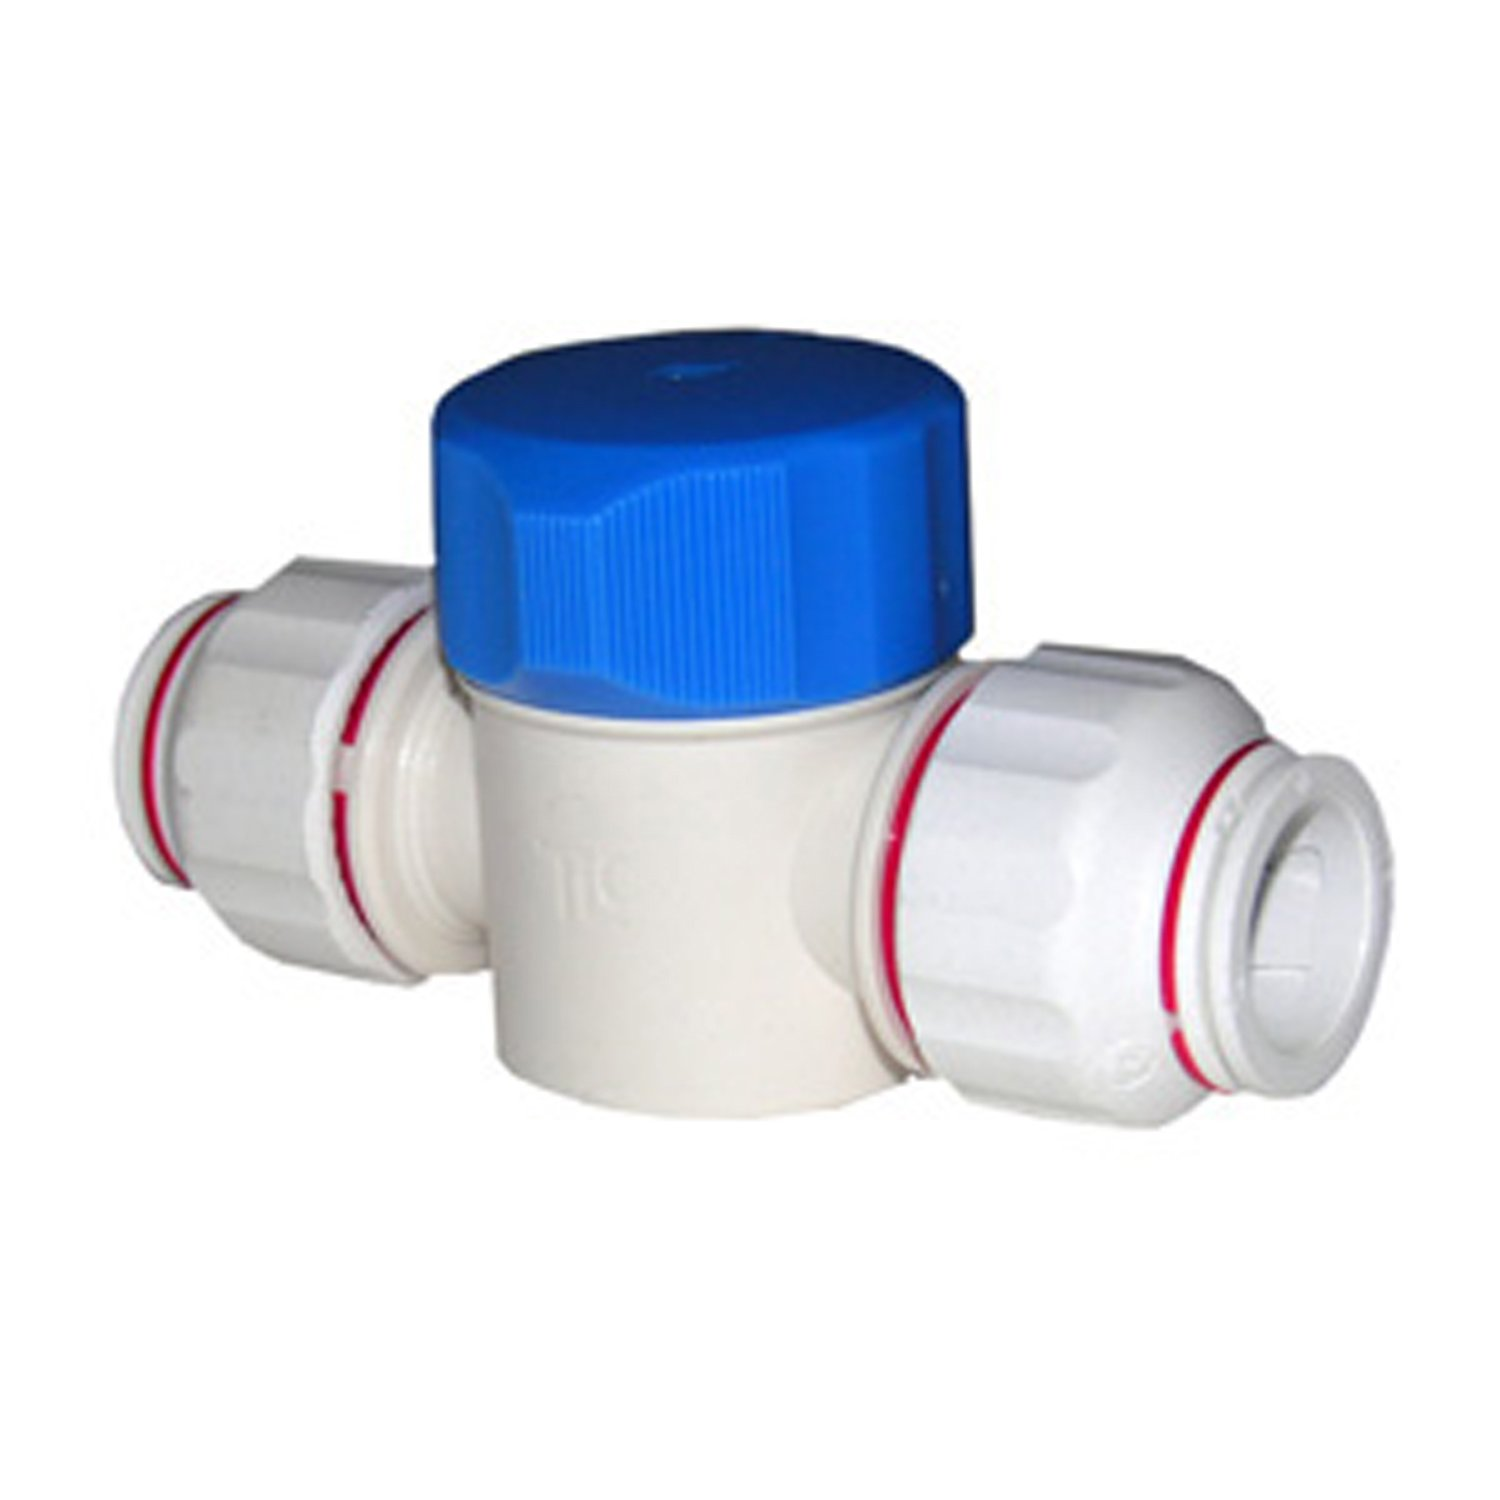 LASCO 19-6509 Straight Shut Off Valve Push-In Fitting with 7//8-Inch OD Tubing Plastic